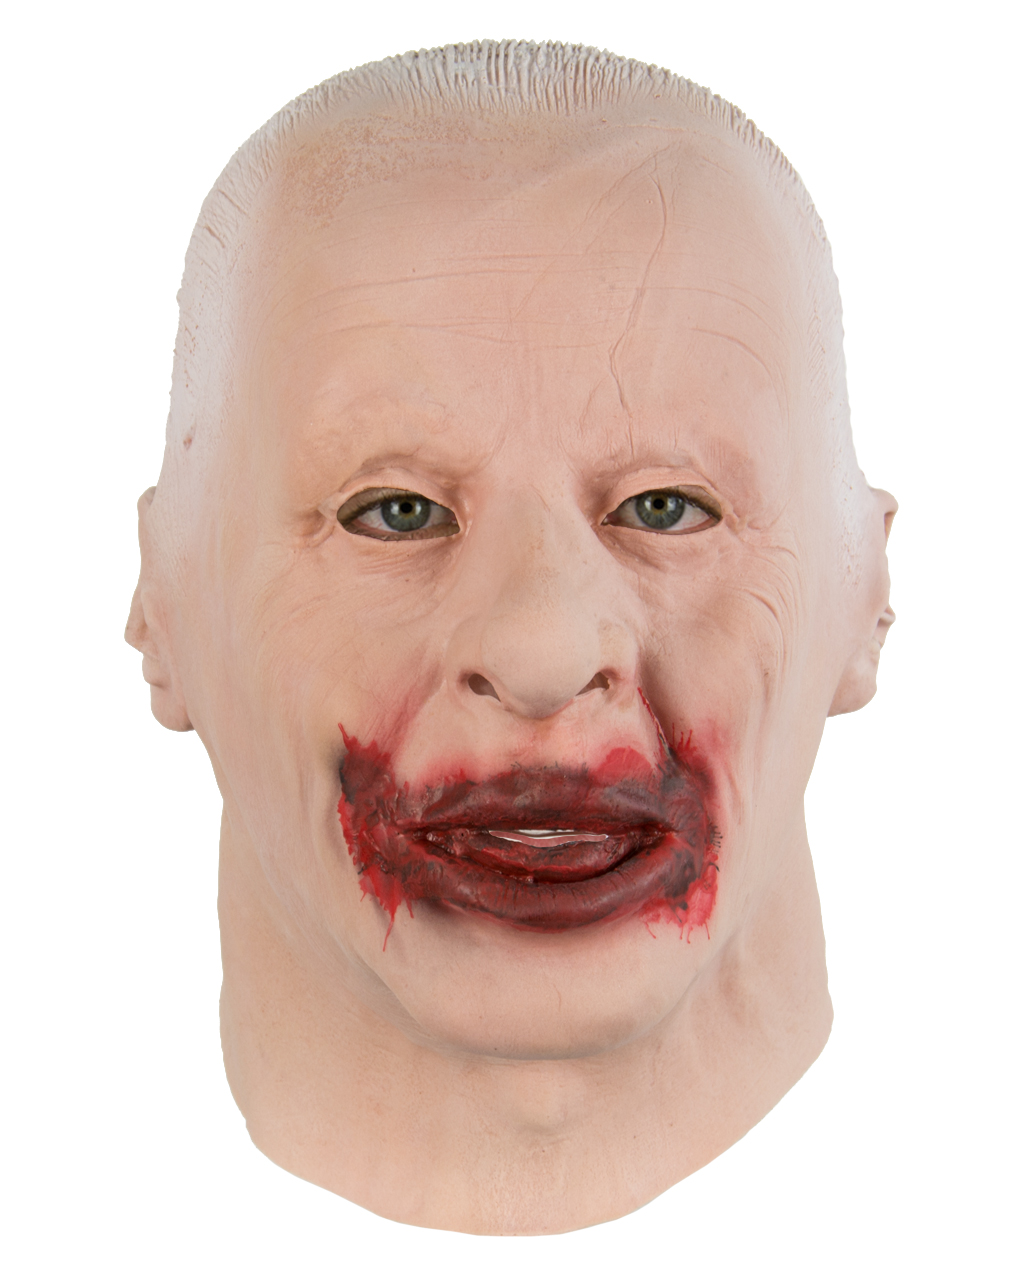 Hannibal The Cannibal Mask Buy Horror Masks Horror Shop Com Matching goggles/mask sets also come in a variety of other colors and styles. hannibal the cannibal mask